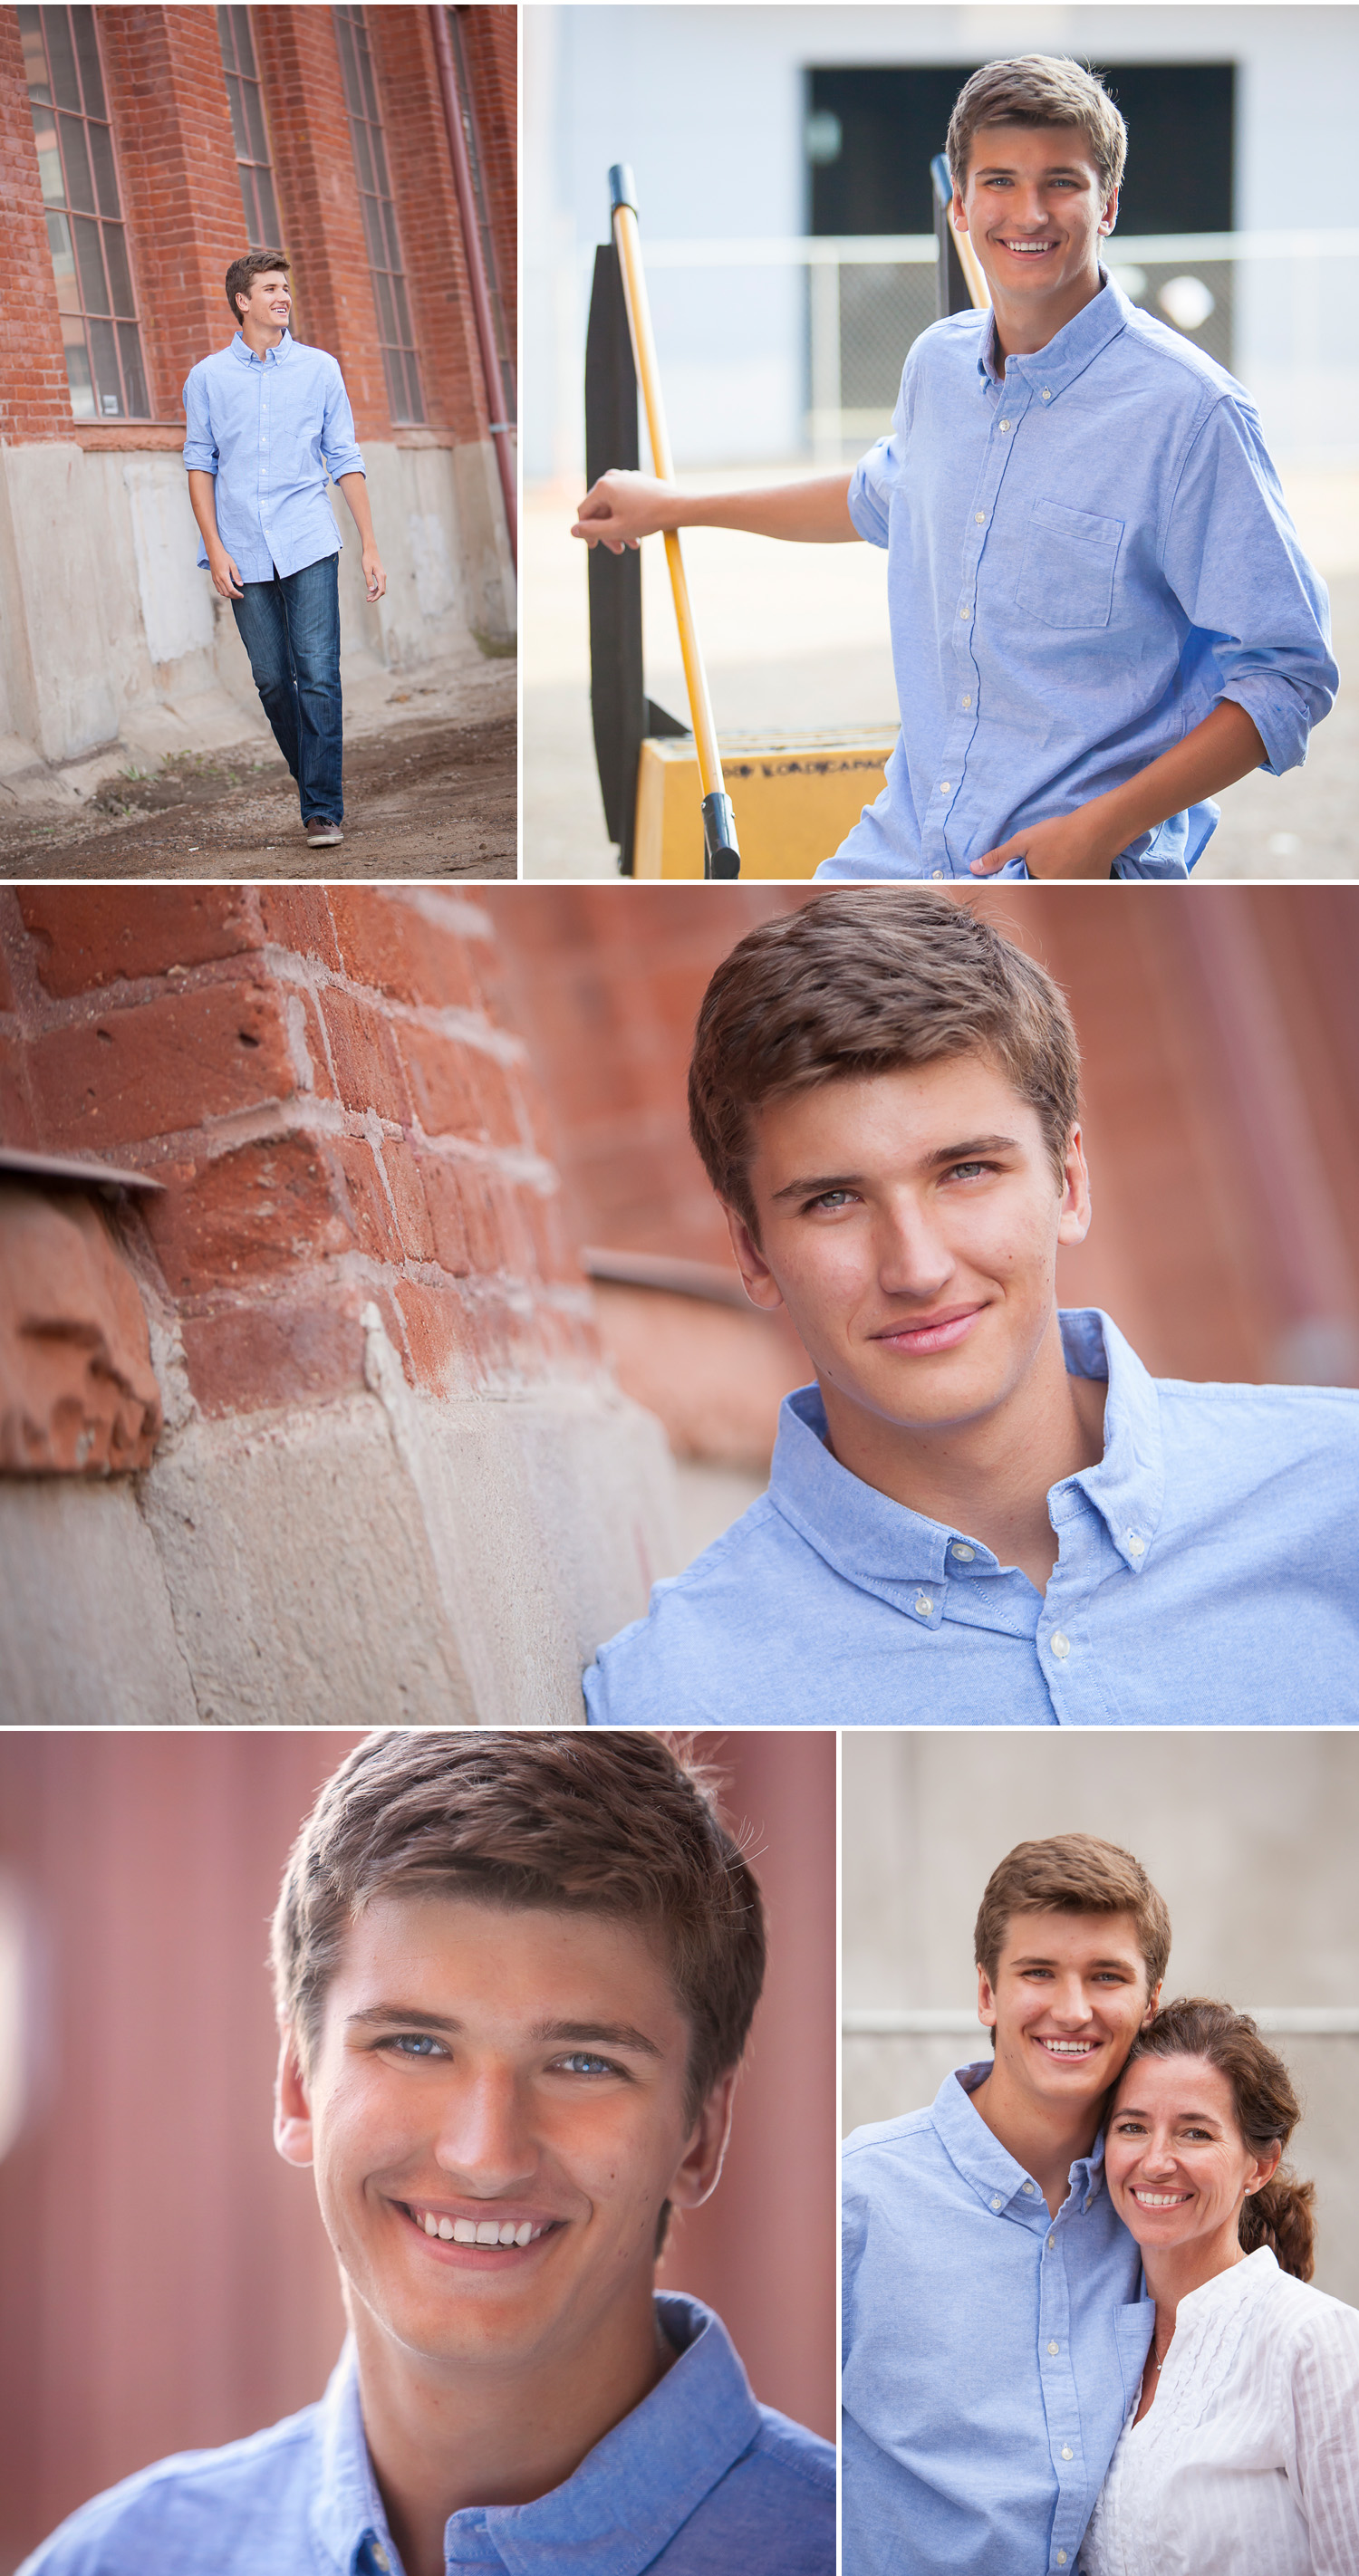 High school senior guy pictures in Denver with photographer Jennifer Koskinen | Merritt Portrait Studio